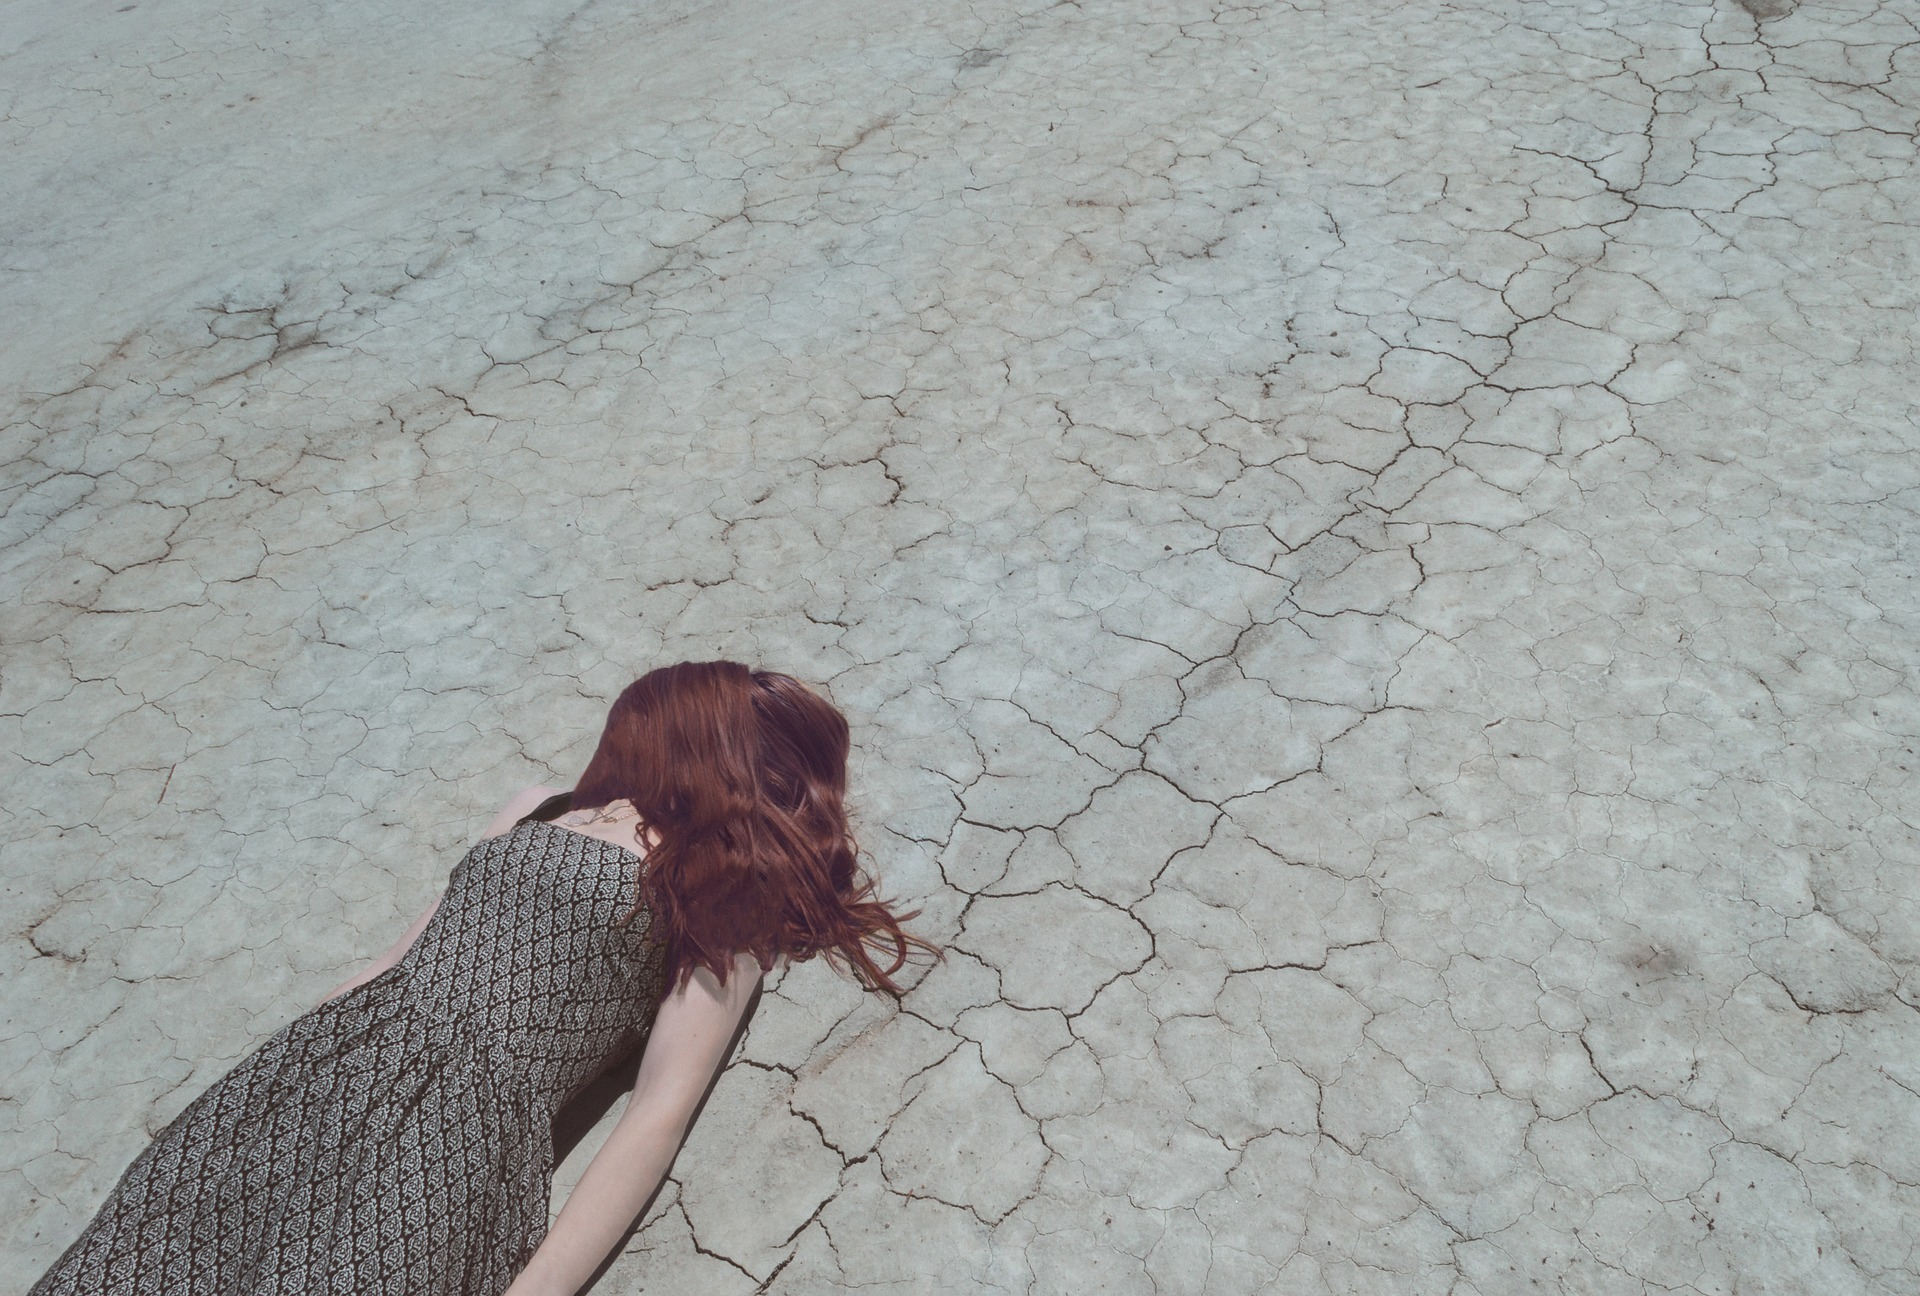 Women with mental illness laying on cracked dirt with her hair over her face